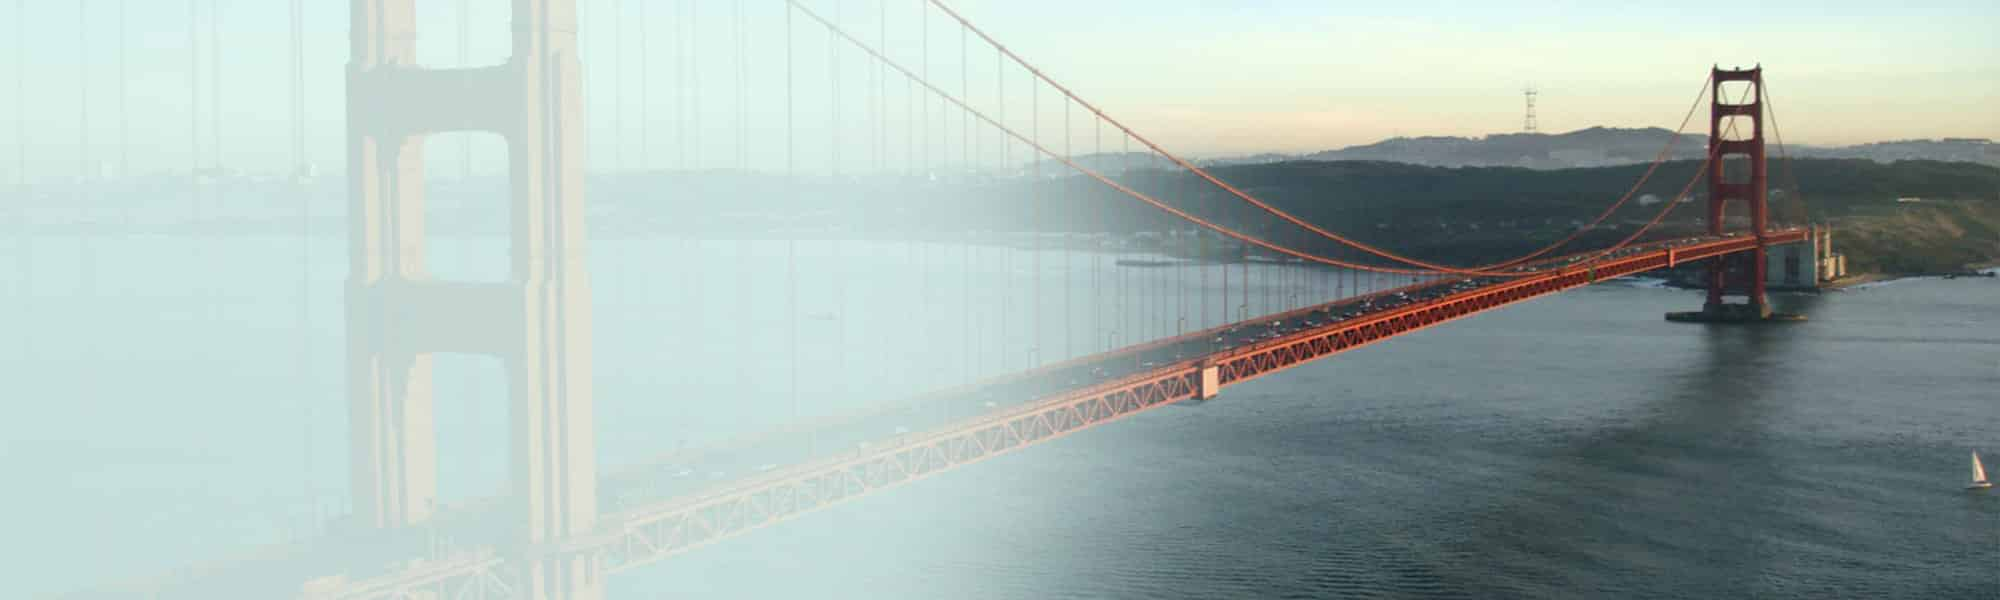 Bridge the gap between data and conversion with seo consulting